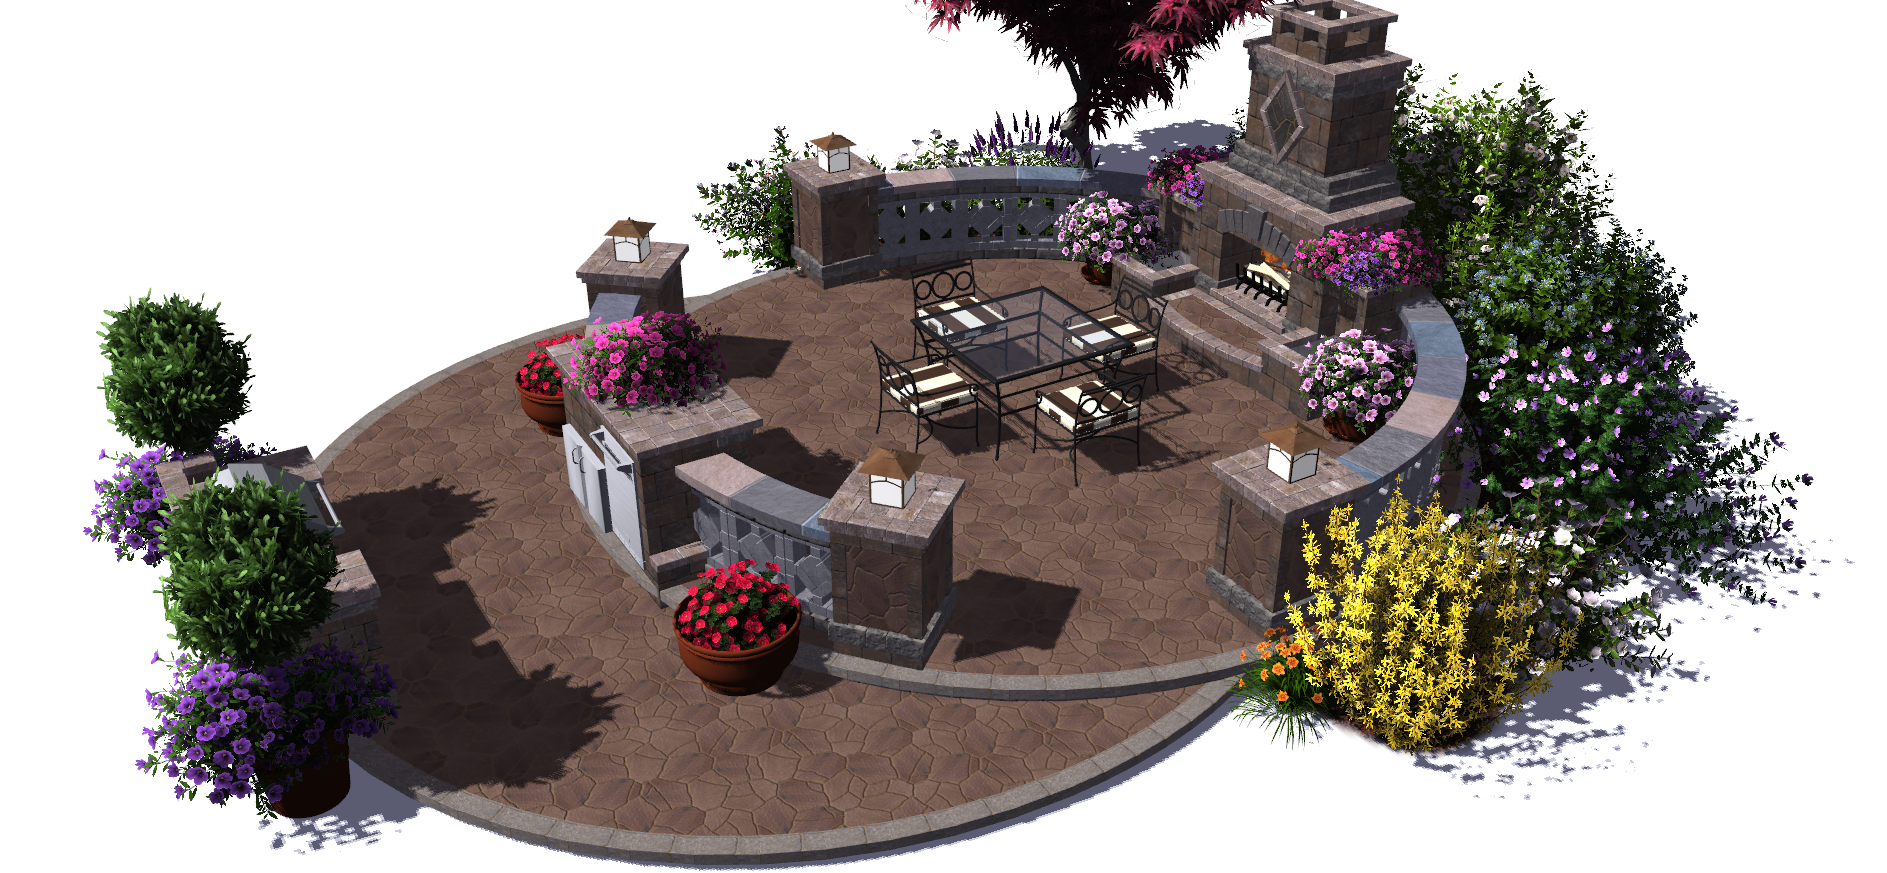 visionscape interactive  llc  transforms landscape design  u0026 planning with new 3d interactive